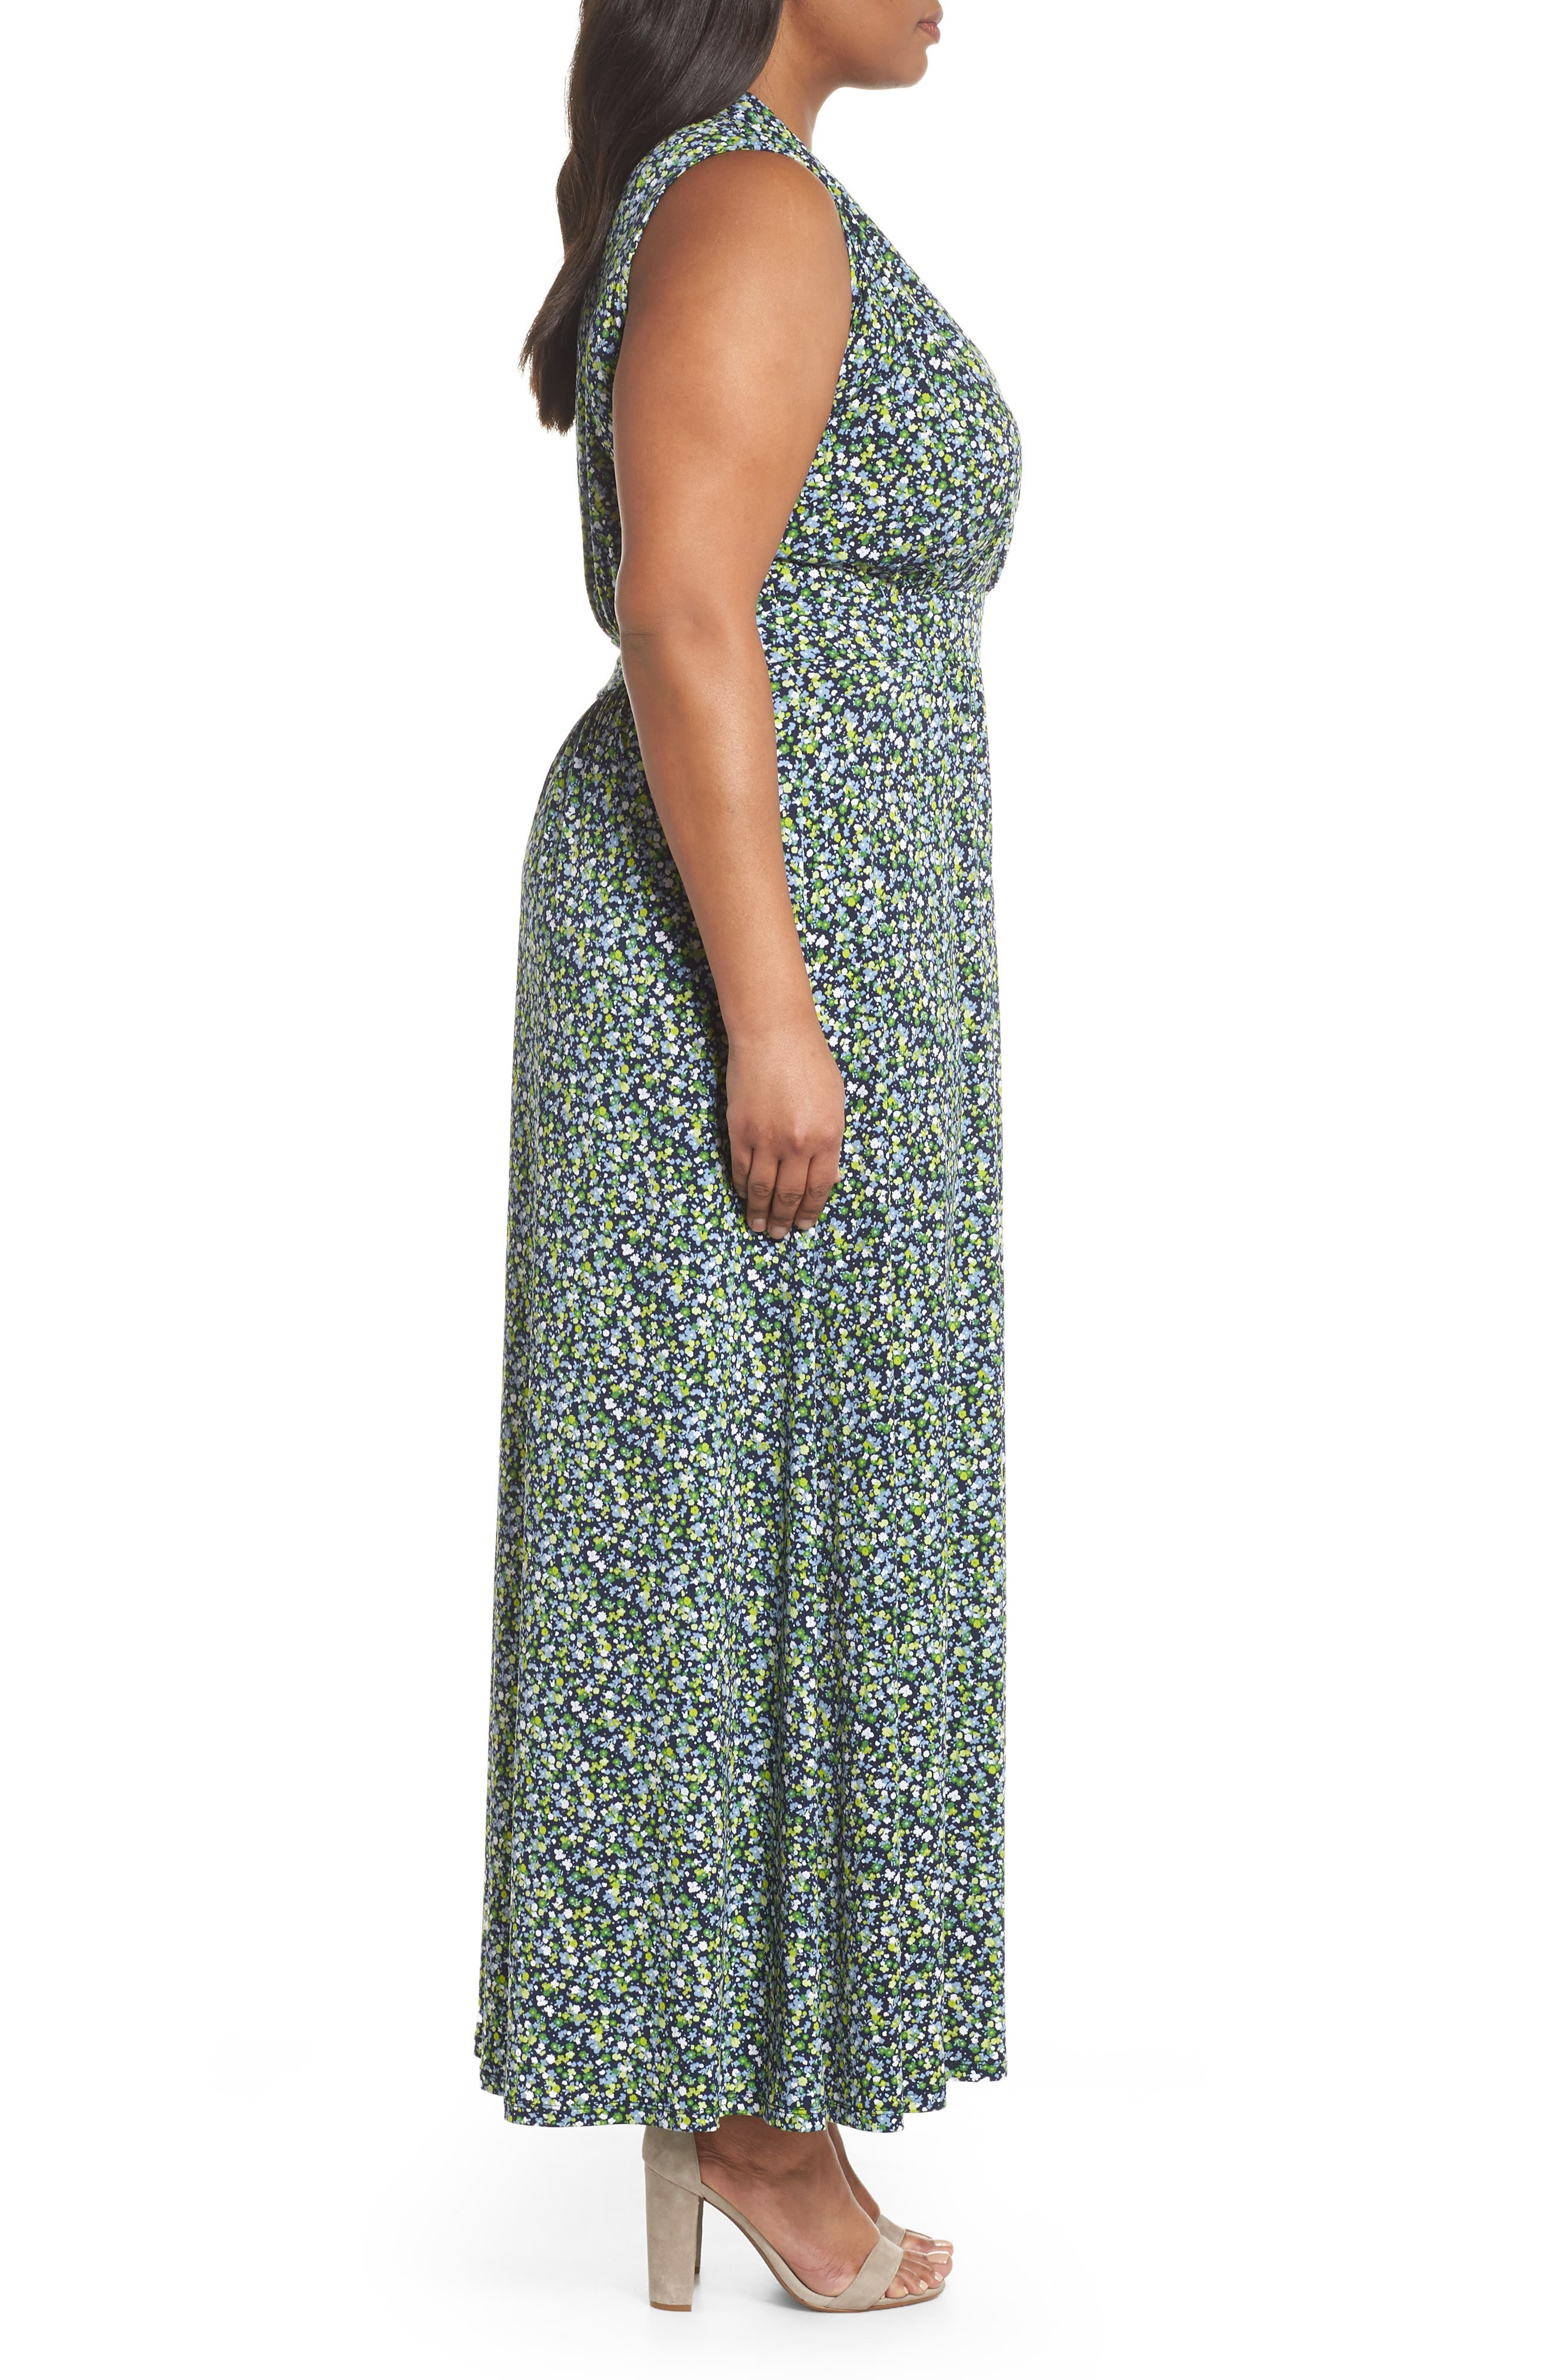 Wildflowers Maxi Dress,                             Alternate thumbnail 3, color,                             462